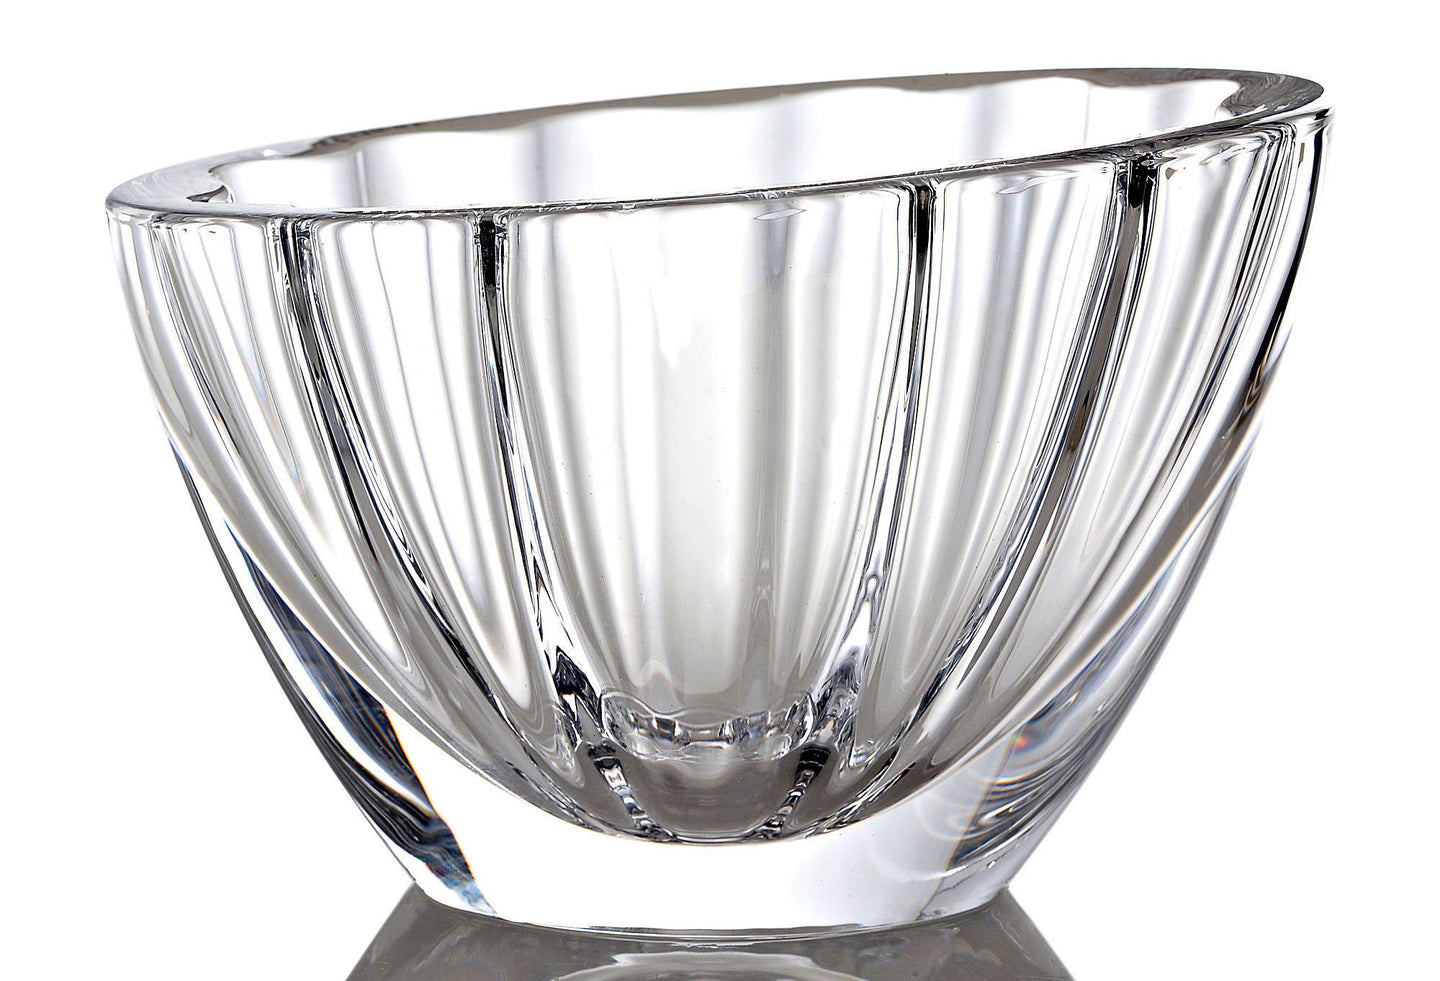 Decorative Heavy Crystal Milani 9-inch Bowl - Nature Home Decor